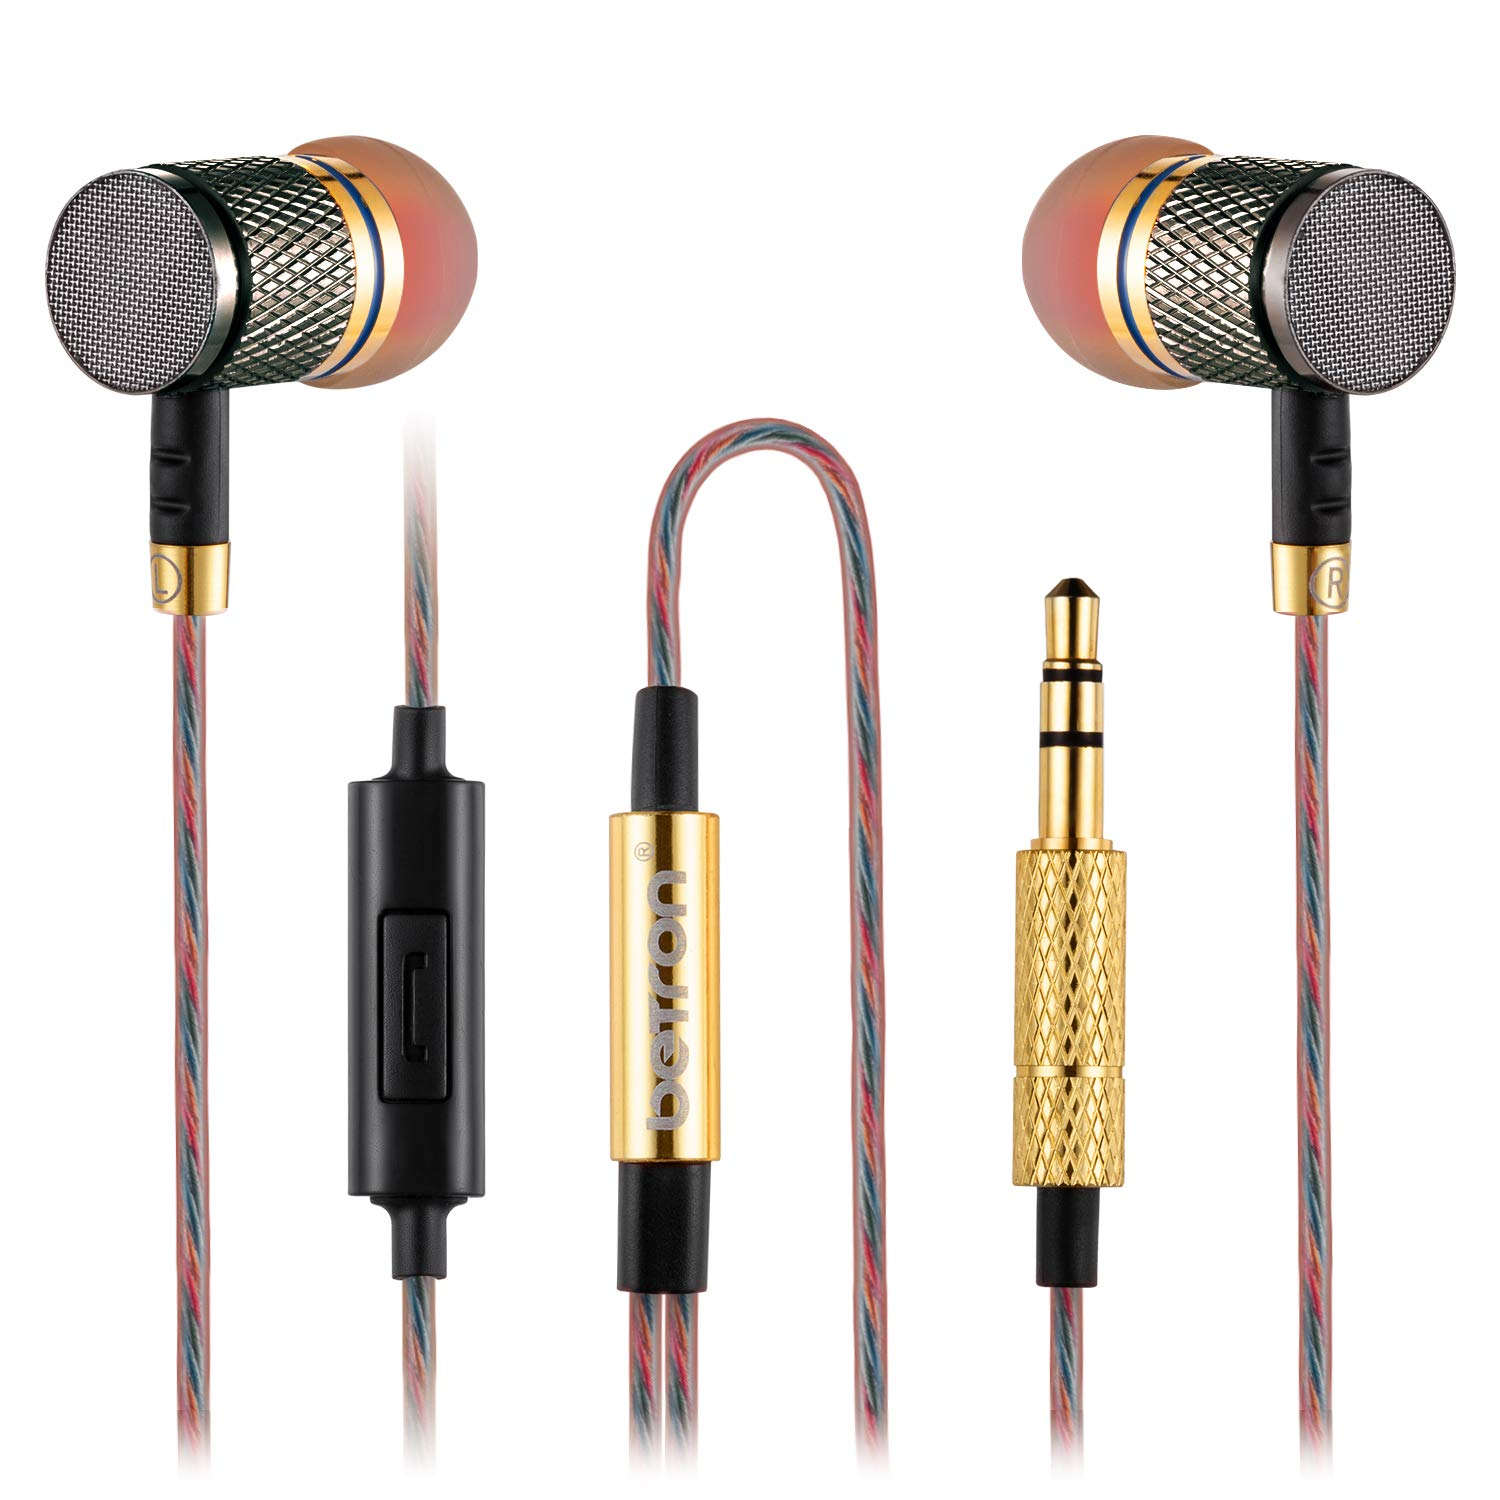 Samsung Galaxy HTC MP3 Players Noise Isolating Nexus in-ear Heavy Deep Bass for iPhone BlackBerry etc High Definition iPod Betron YSM1000 Earphones Headphones With Microphone iPad Nokia